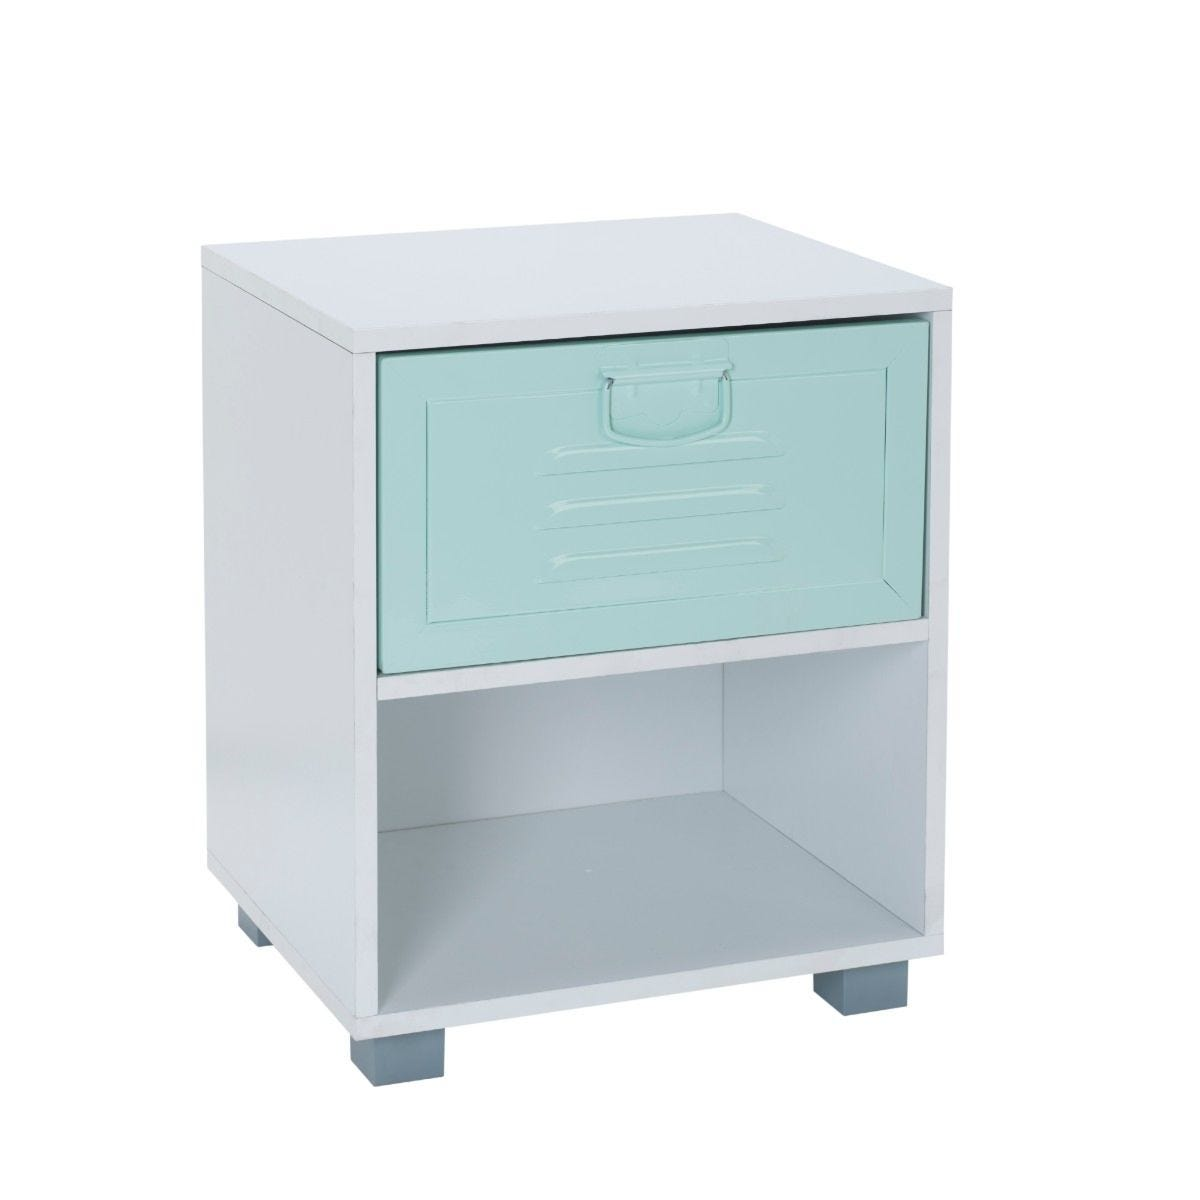 White 1 Draw Bedside Cabinet With Green Metal Drawer